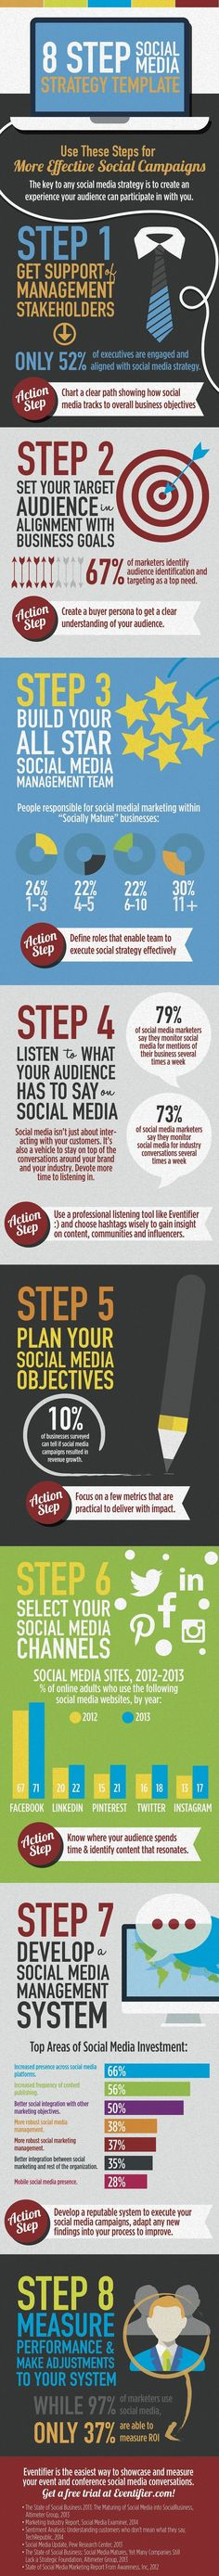 Infographic: 8 Step Social Media Marketing Strategy Template